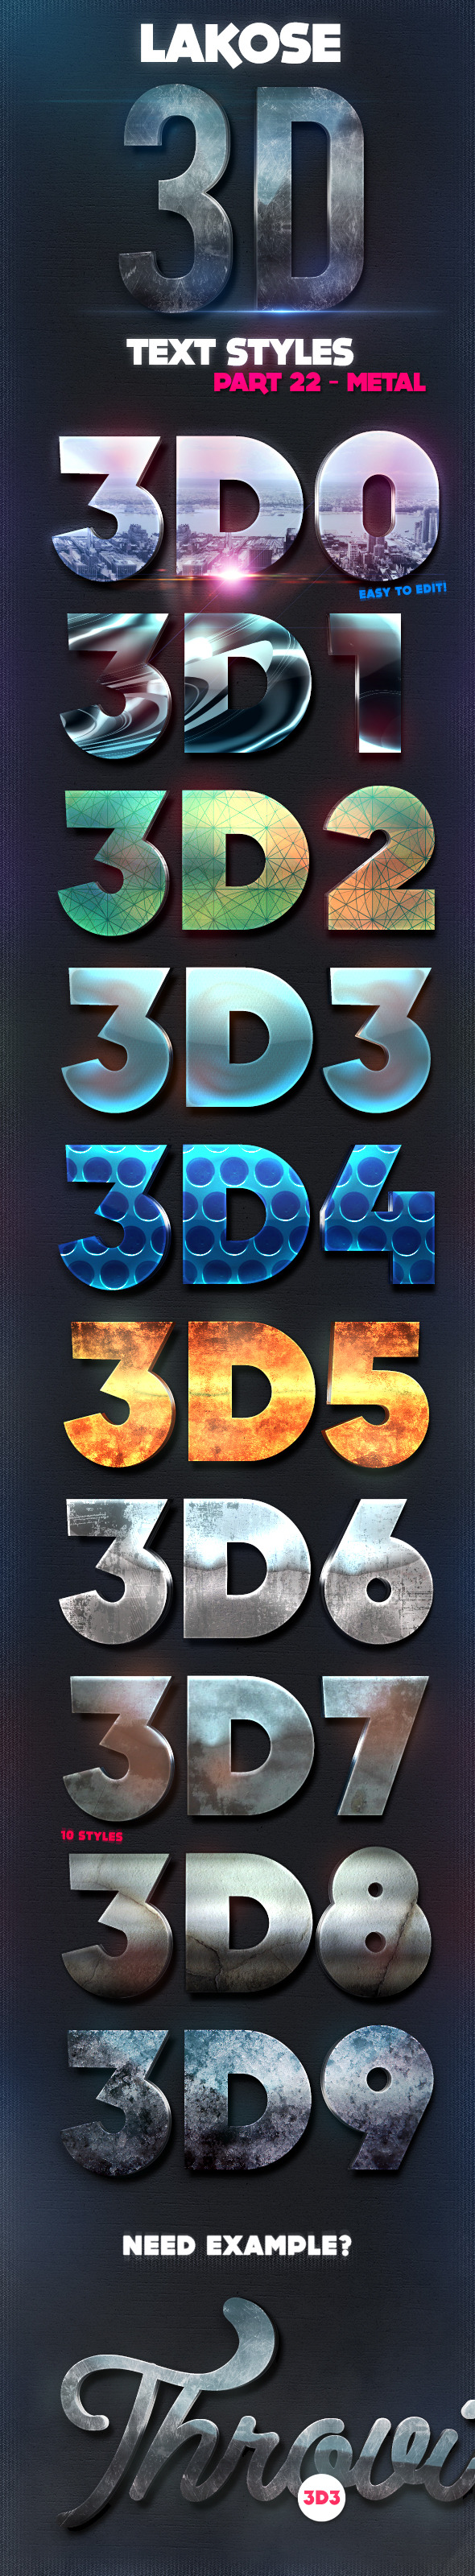 GraphicRiver Lakose 3D Text Styles Part 22 10534201